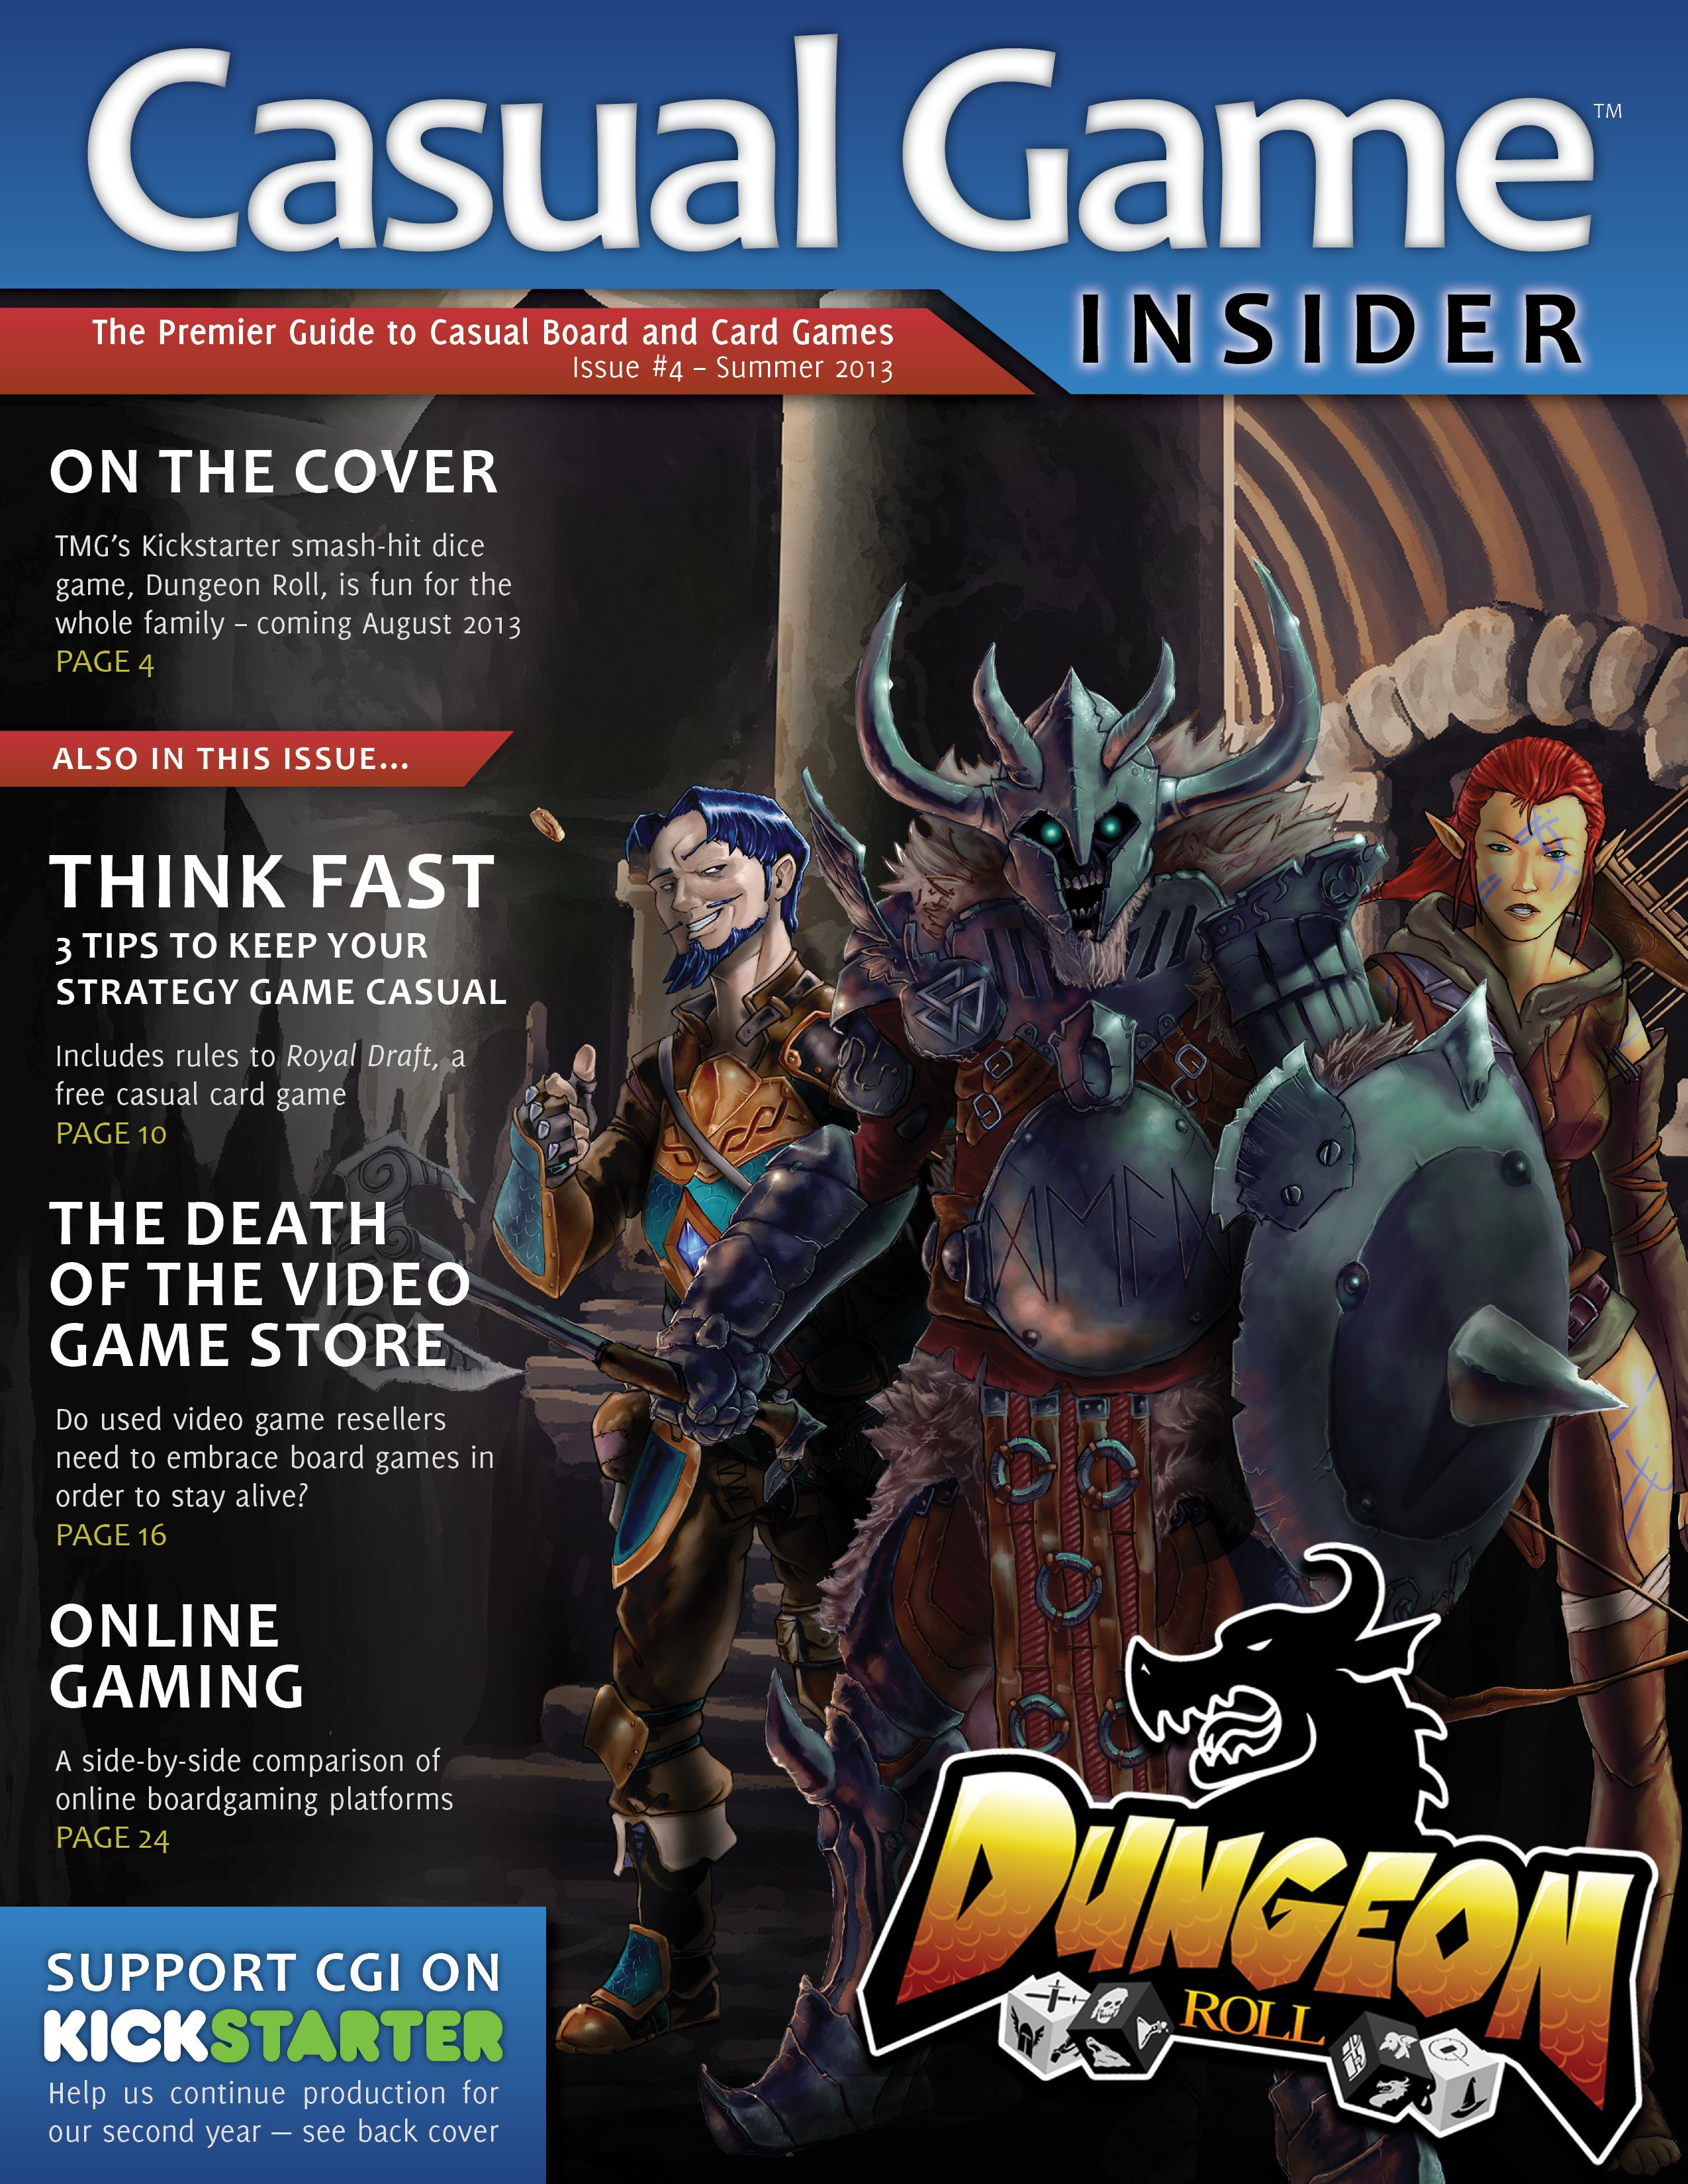 Cgi 4 Dungeon Roll Casual Game Design And Online Gaming Casual Game Revolution